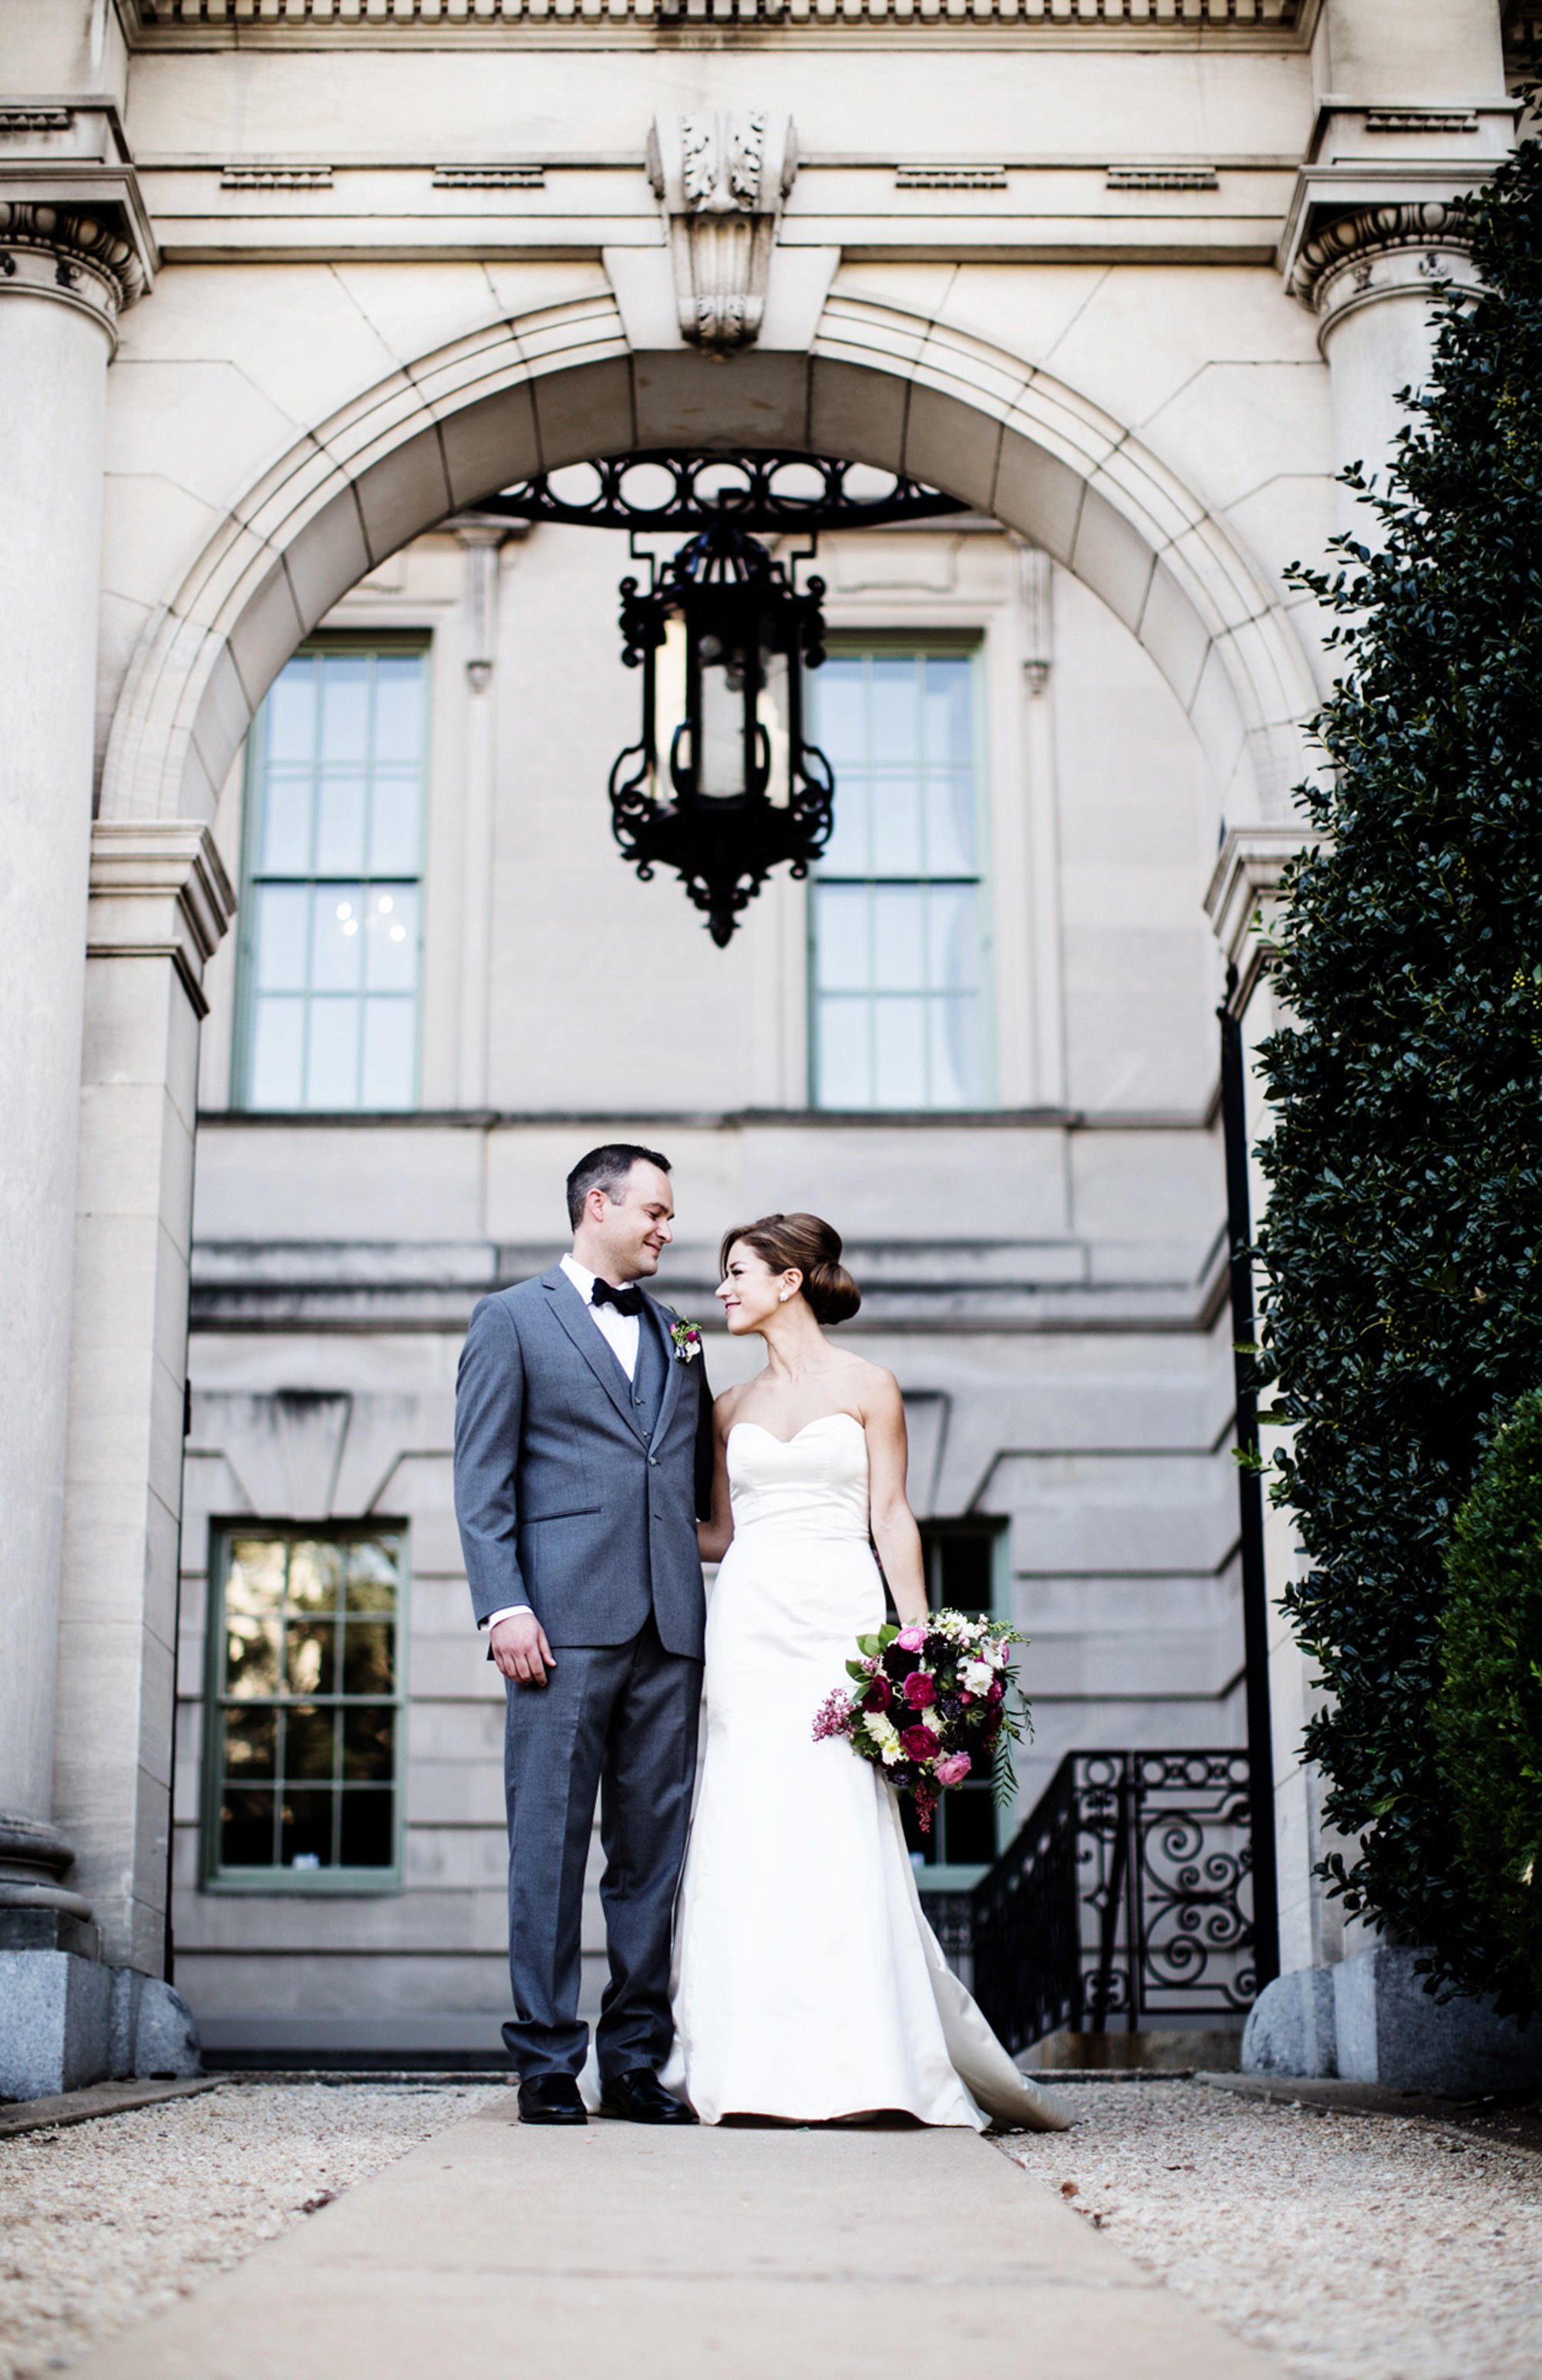 A portrait of the bride and groom at the entrance of Anderson House.